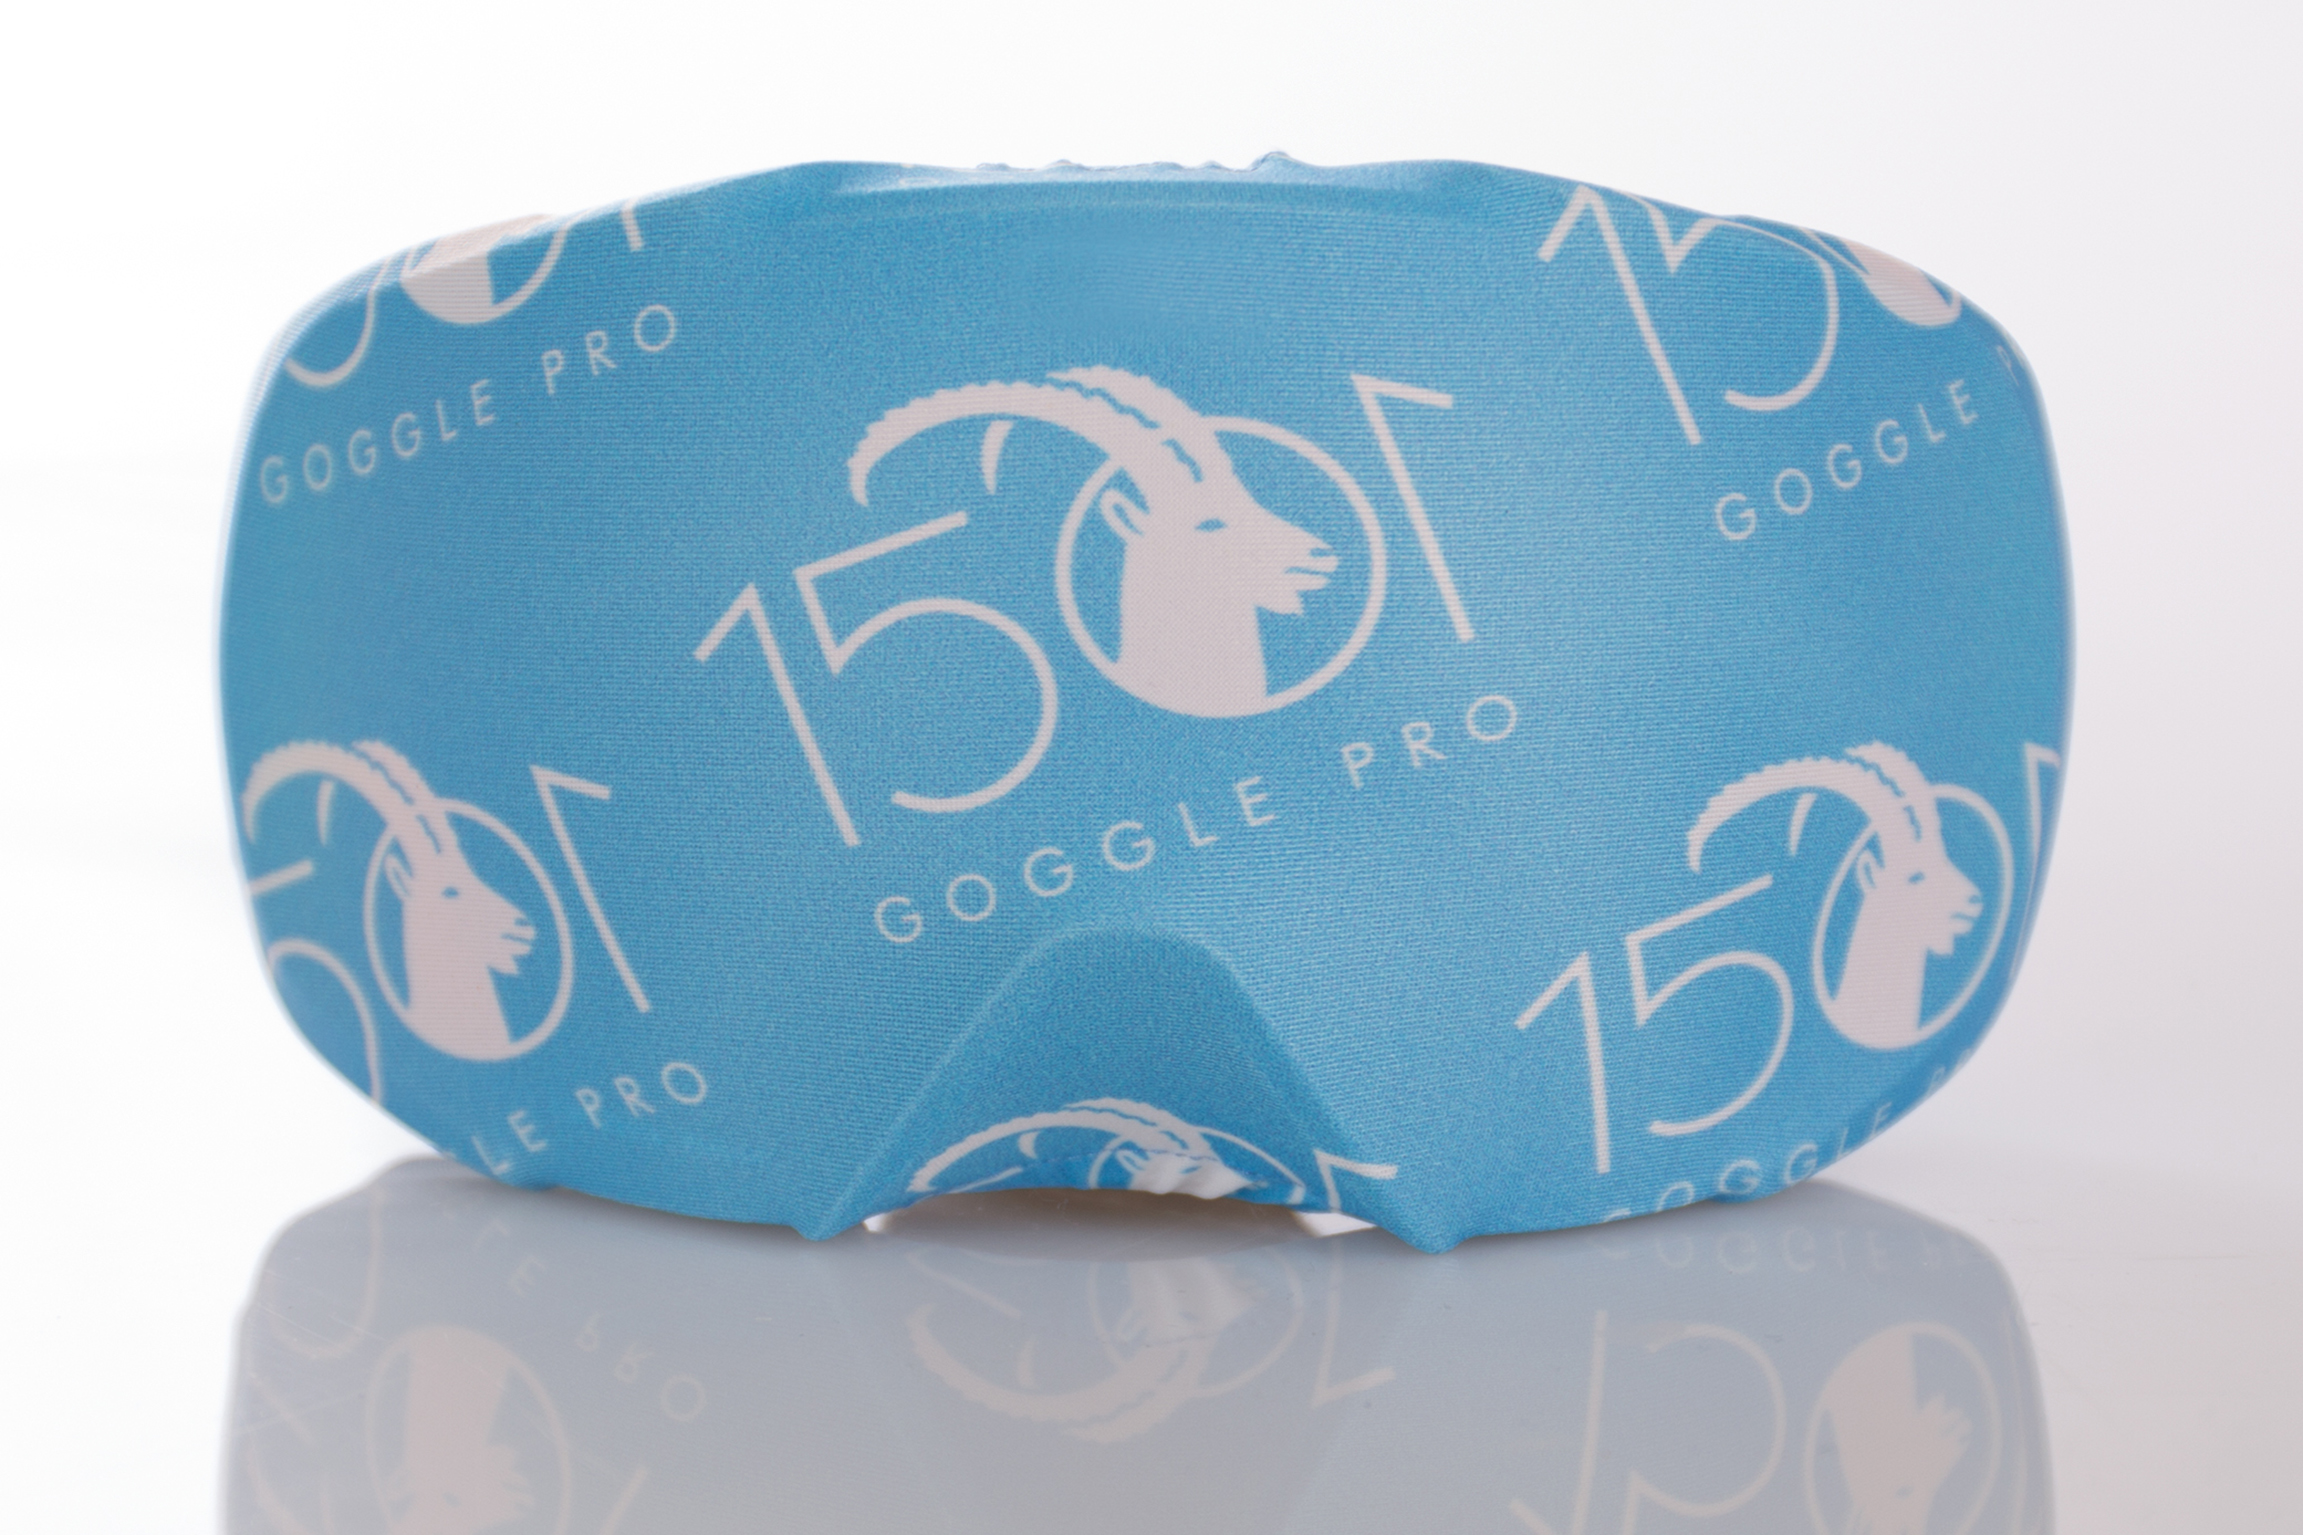 Goggle Pro Forever Fresh